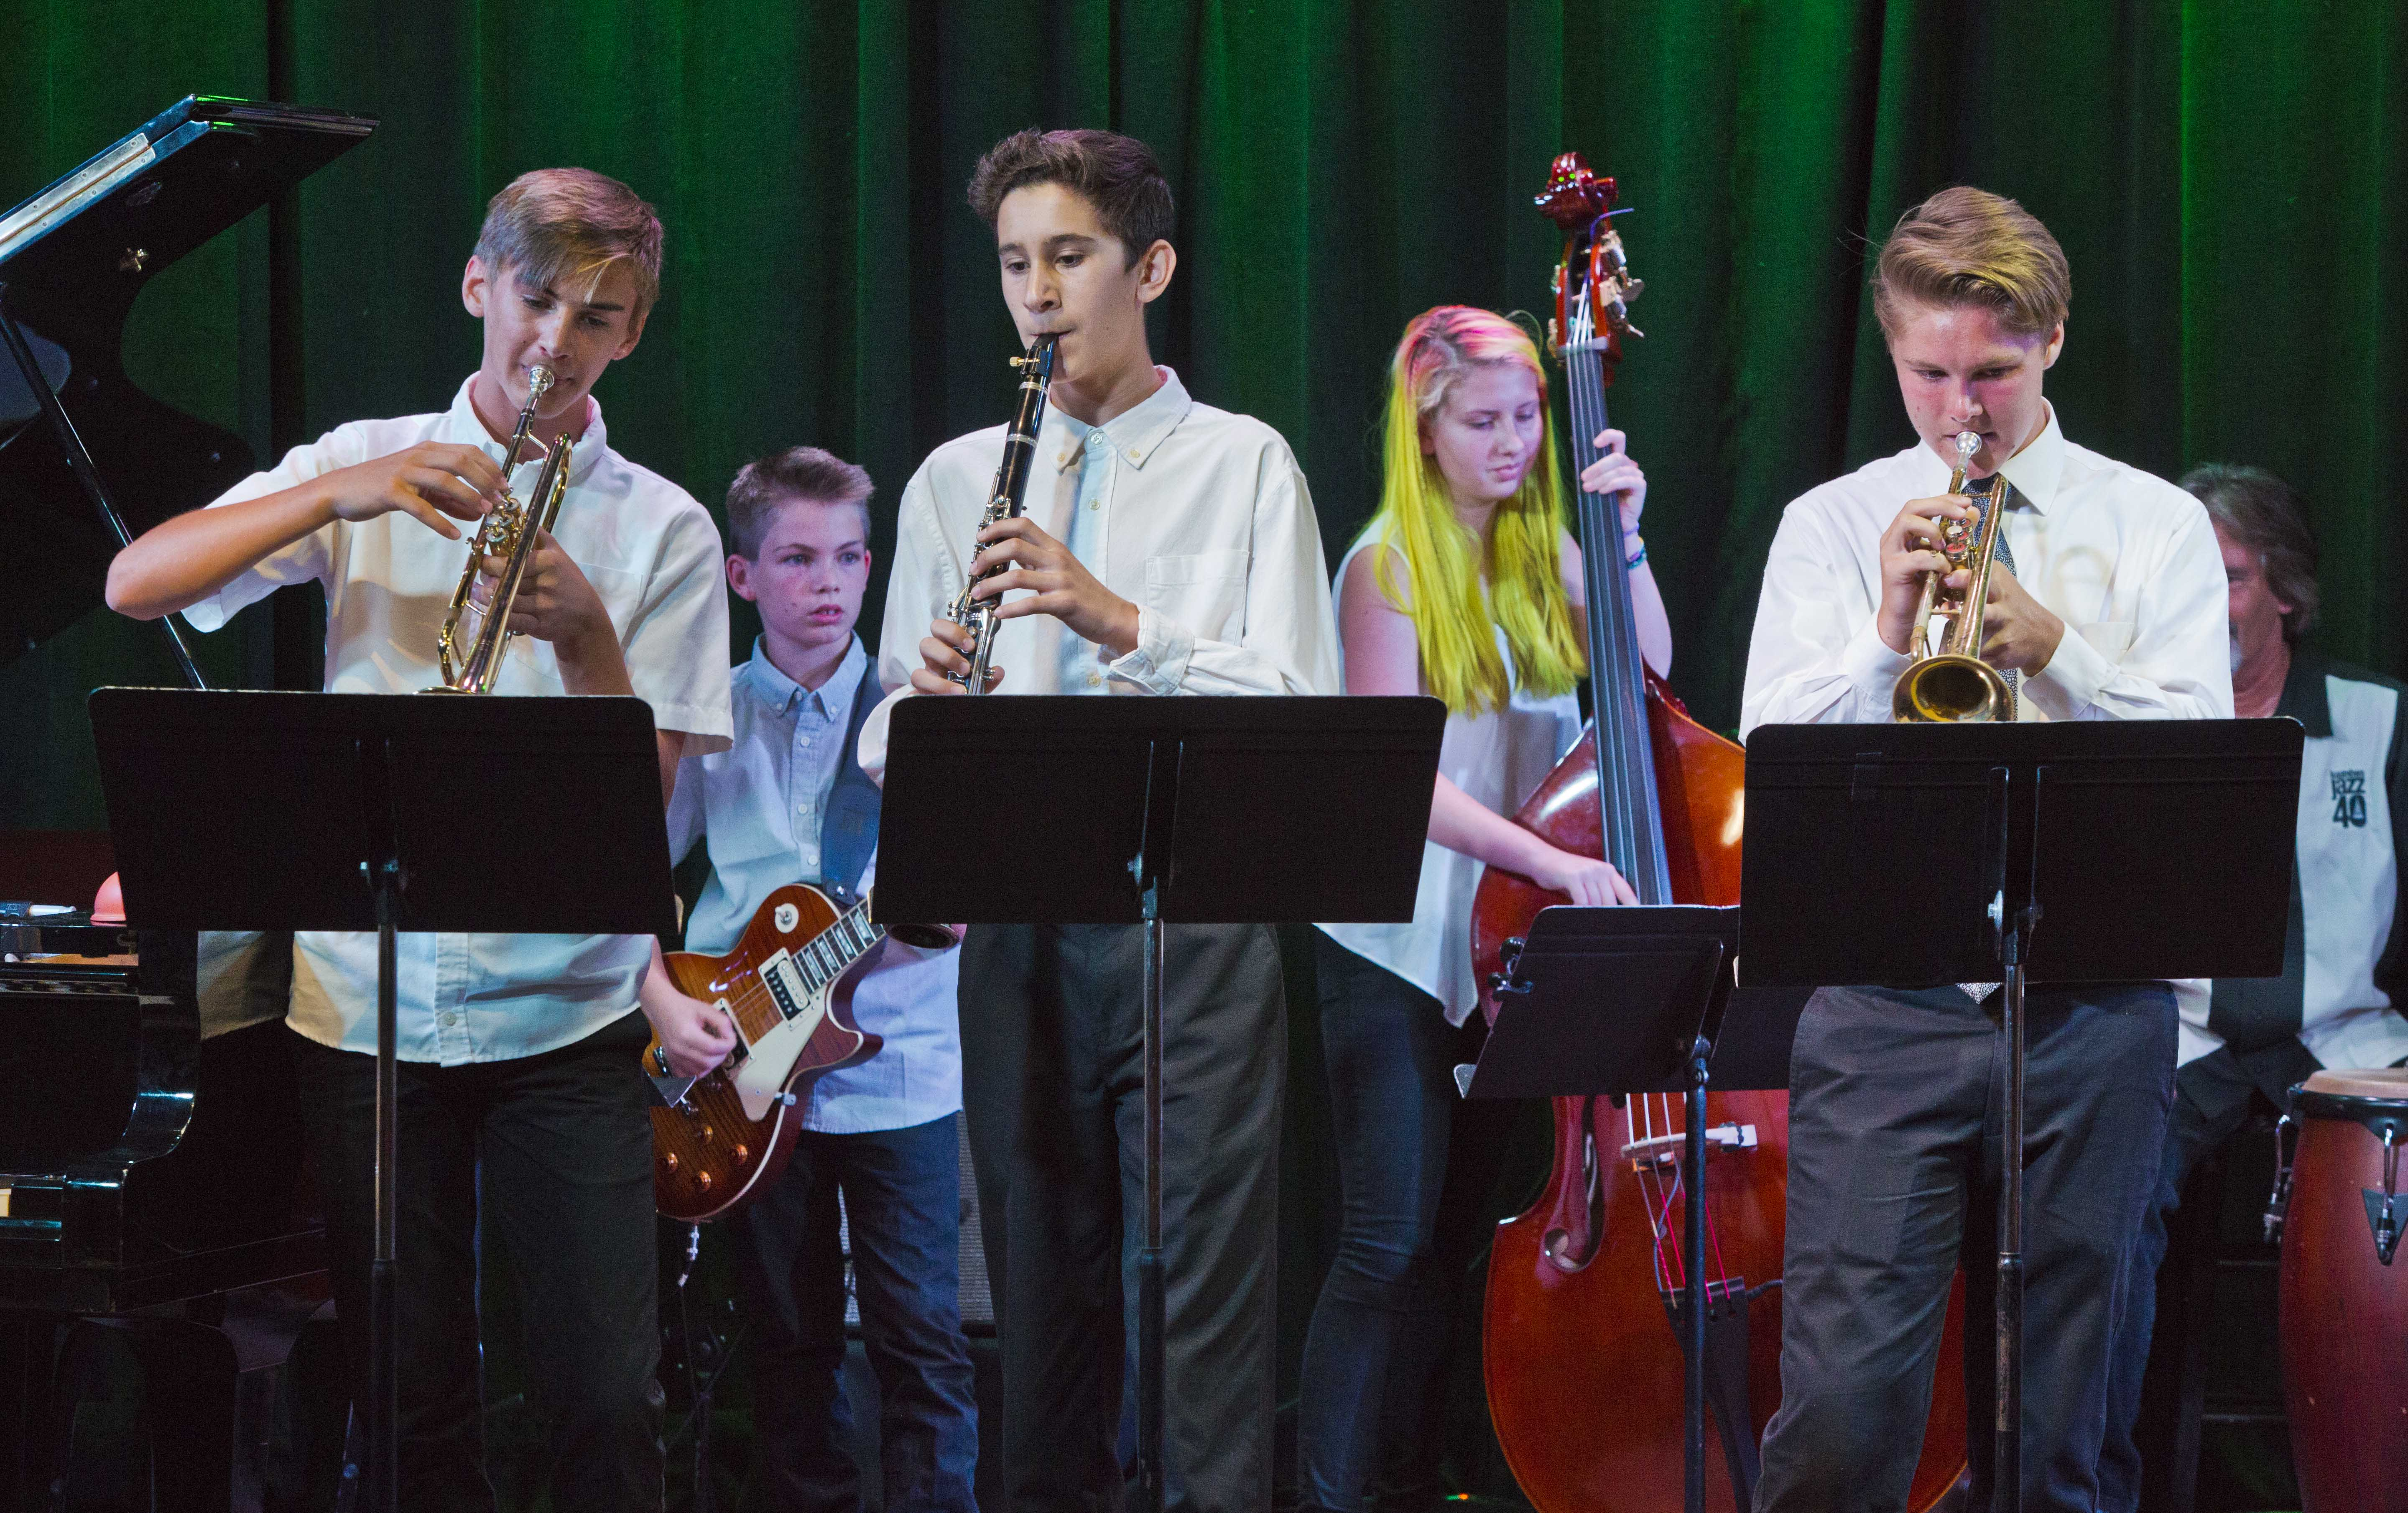 One of the 2017 Jazz Camp bands on the famous Kuumbwa stage.